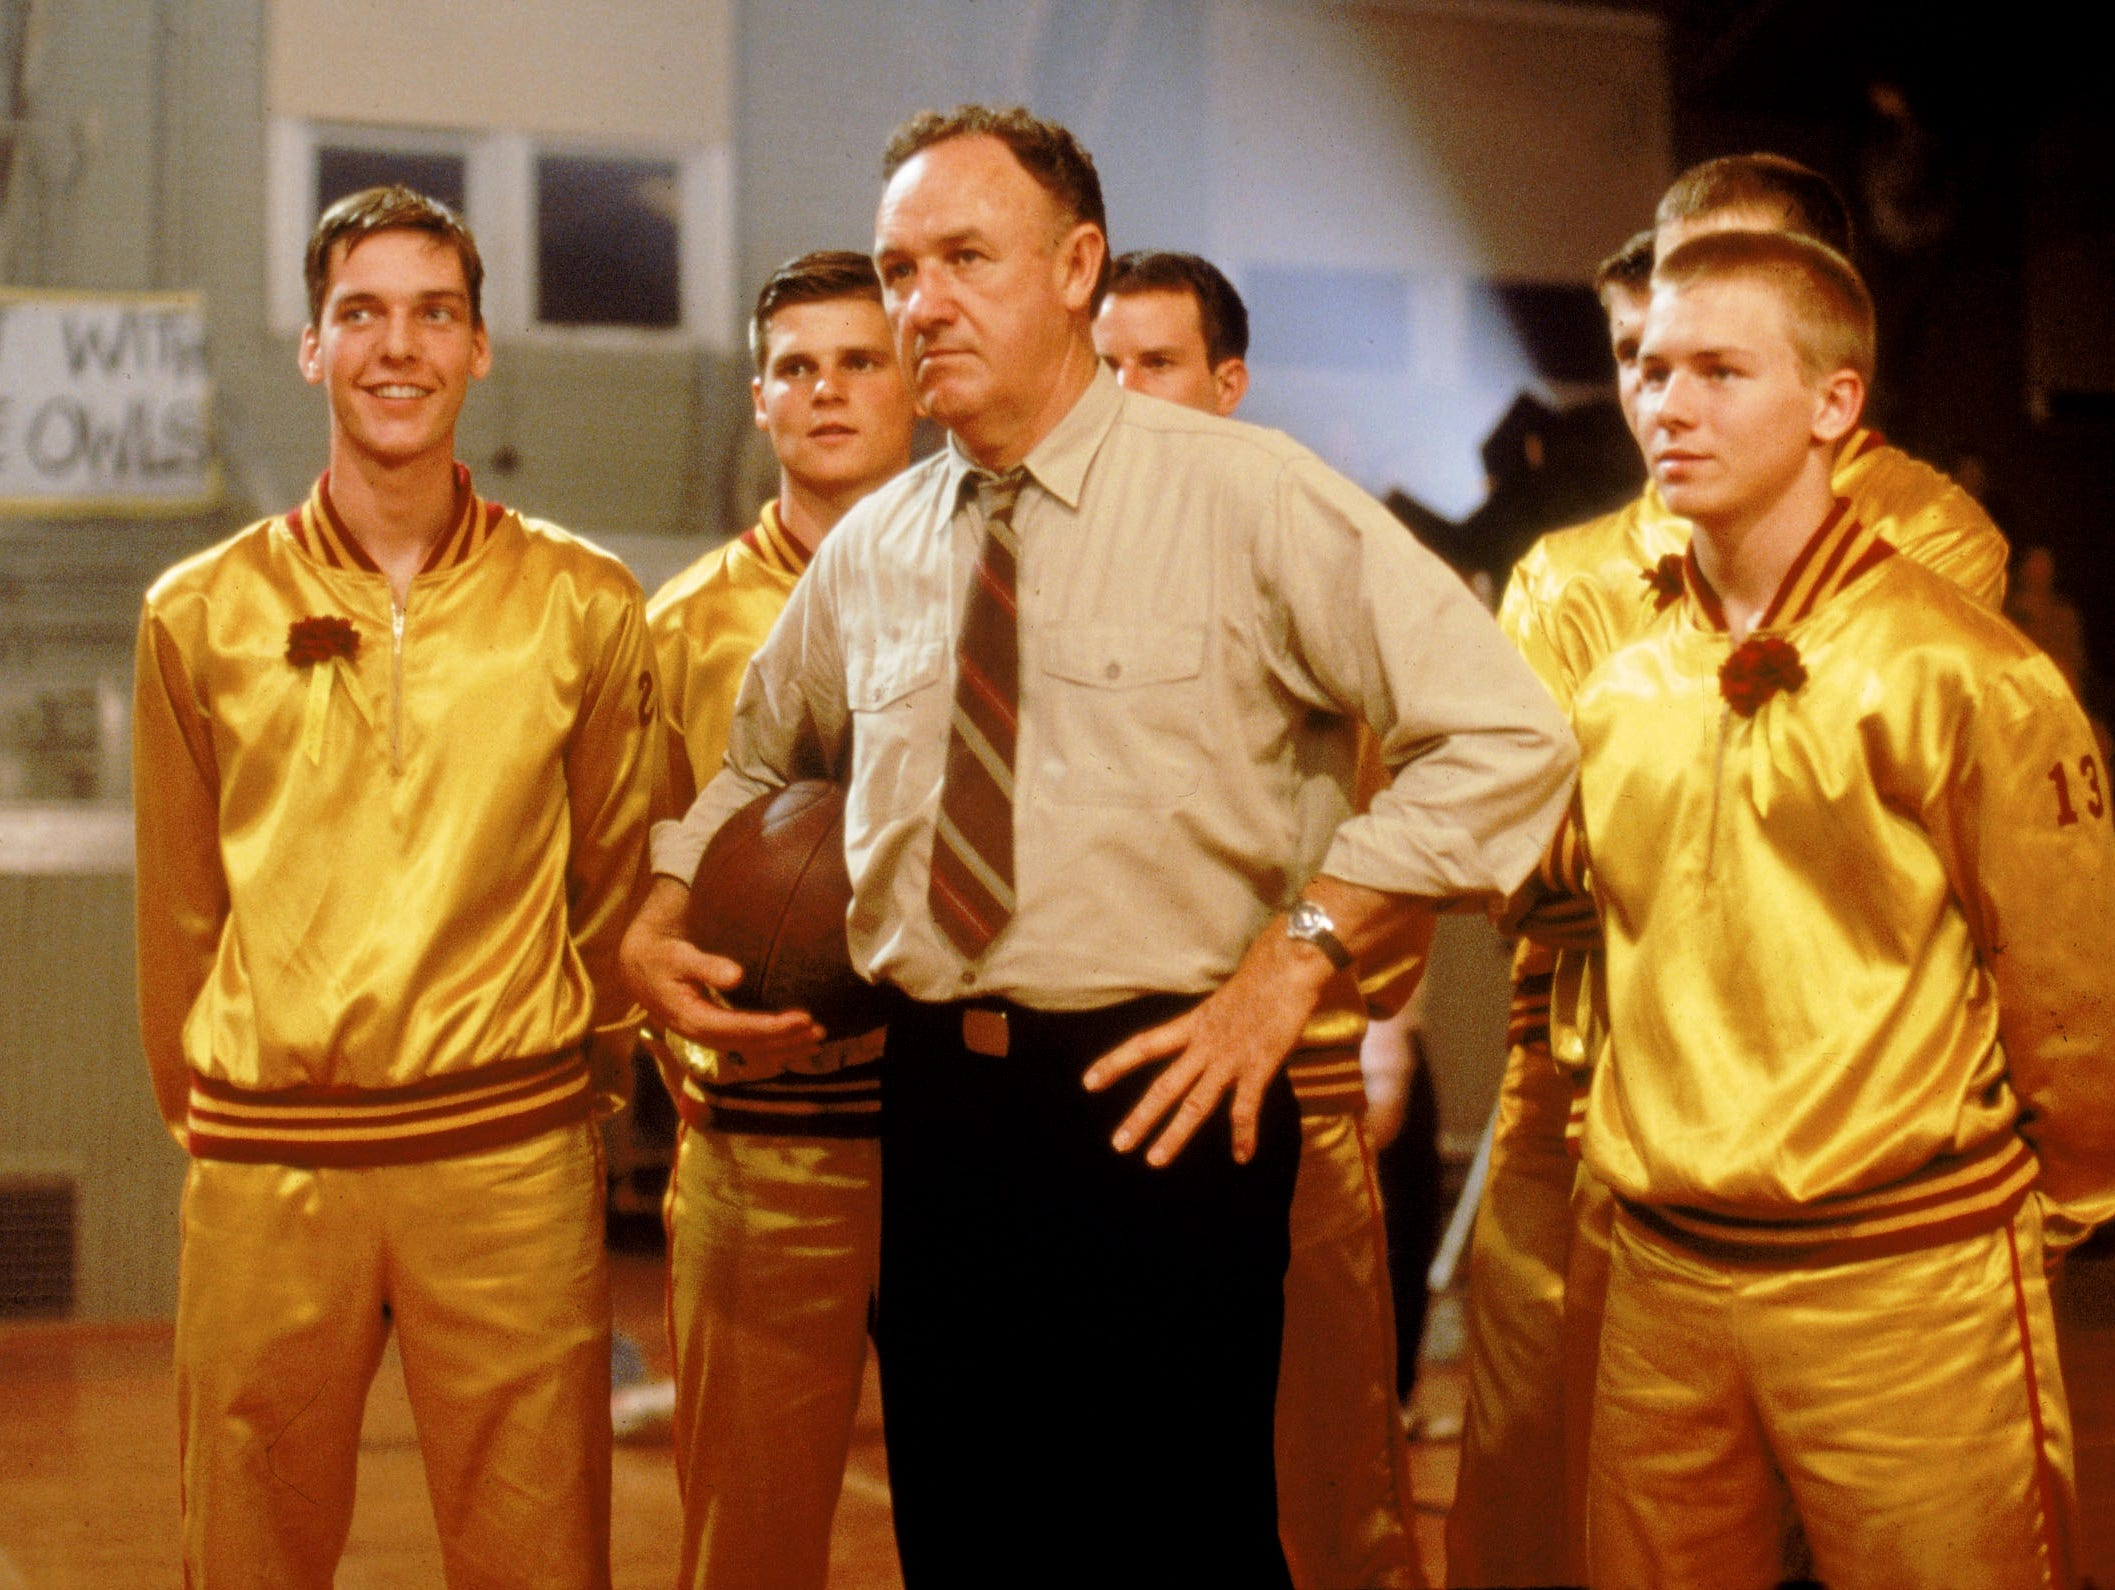 "Gene Hackman, center, with Hickory Team Members in a scene from Orion Pictures' ""Hoosiers."" --- DATE TAKEN: recd 1986  No Byline   Orion Pictures Corporation , Source: Orion Pictures Corporation       HO      - handout   ORG XMIT: ZX15106"